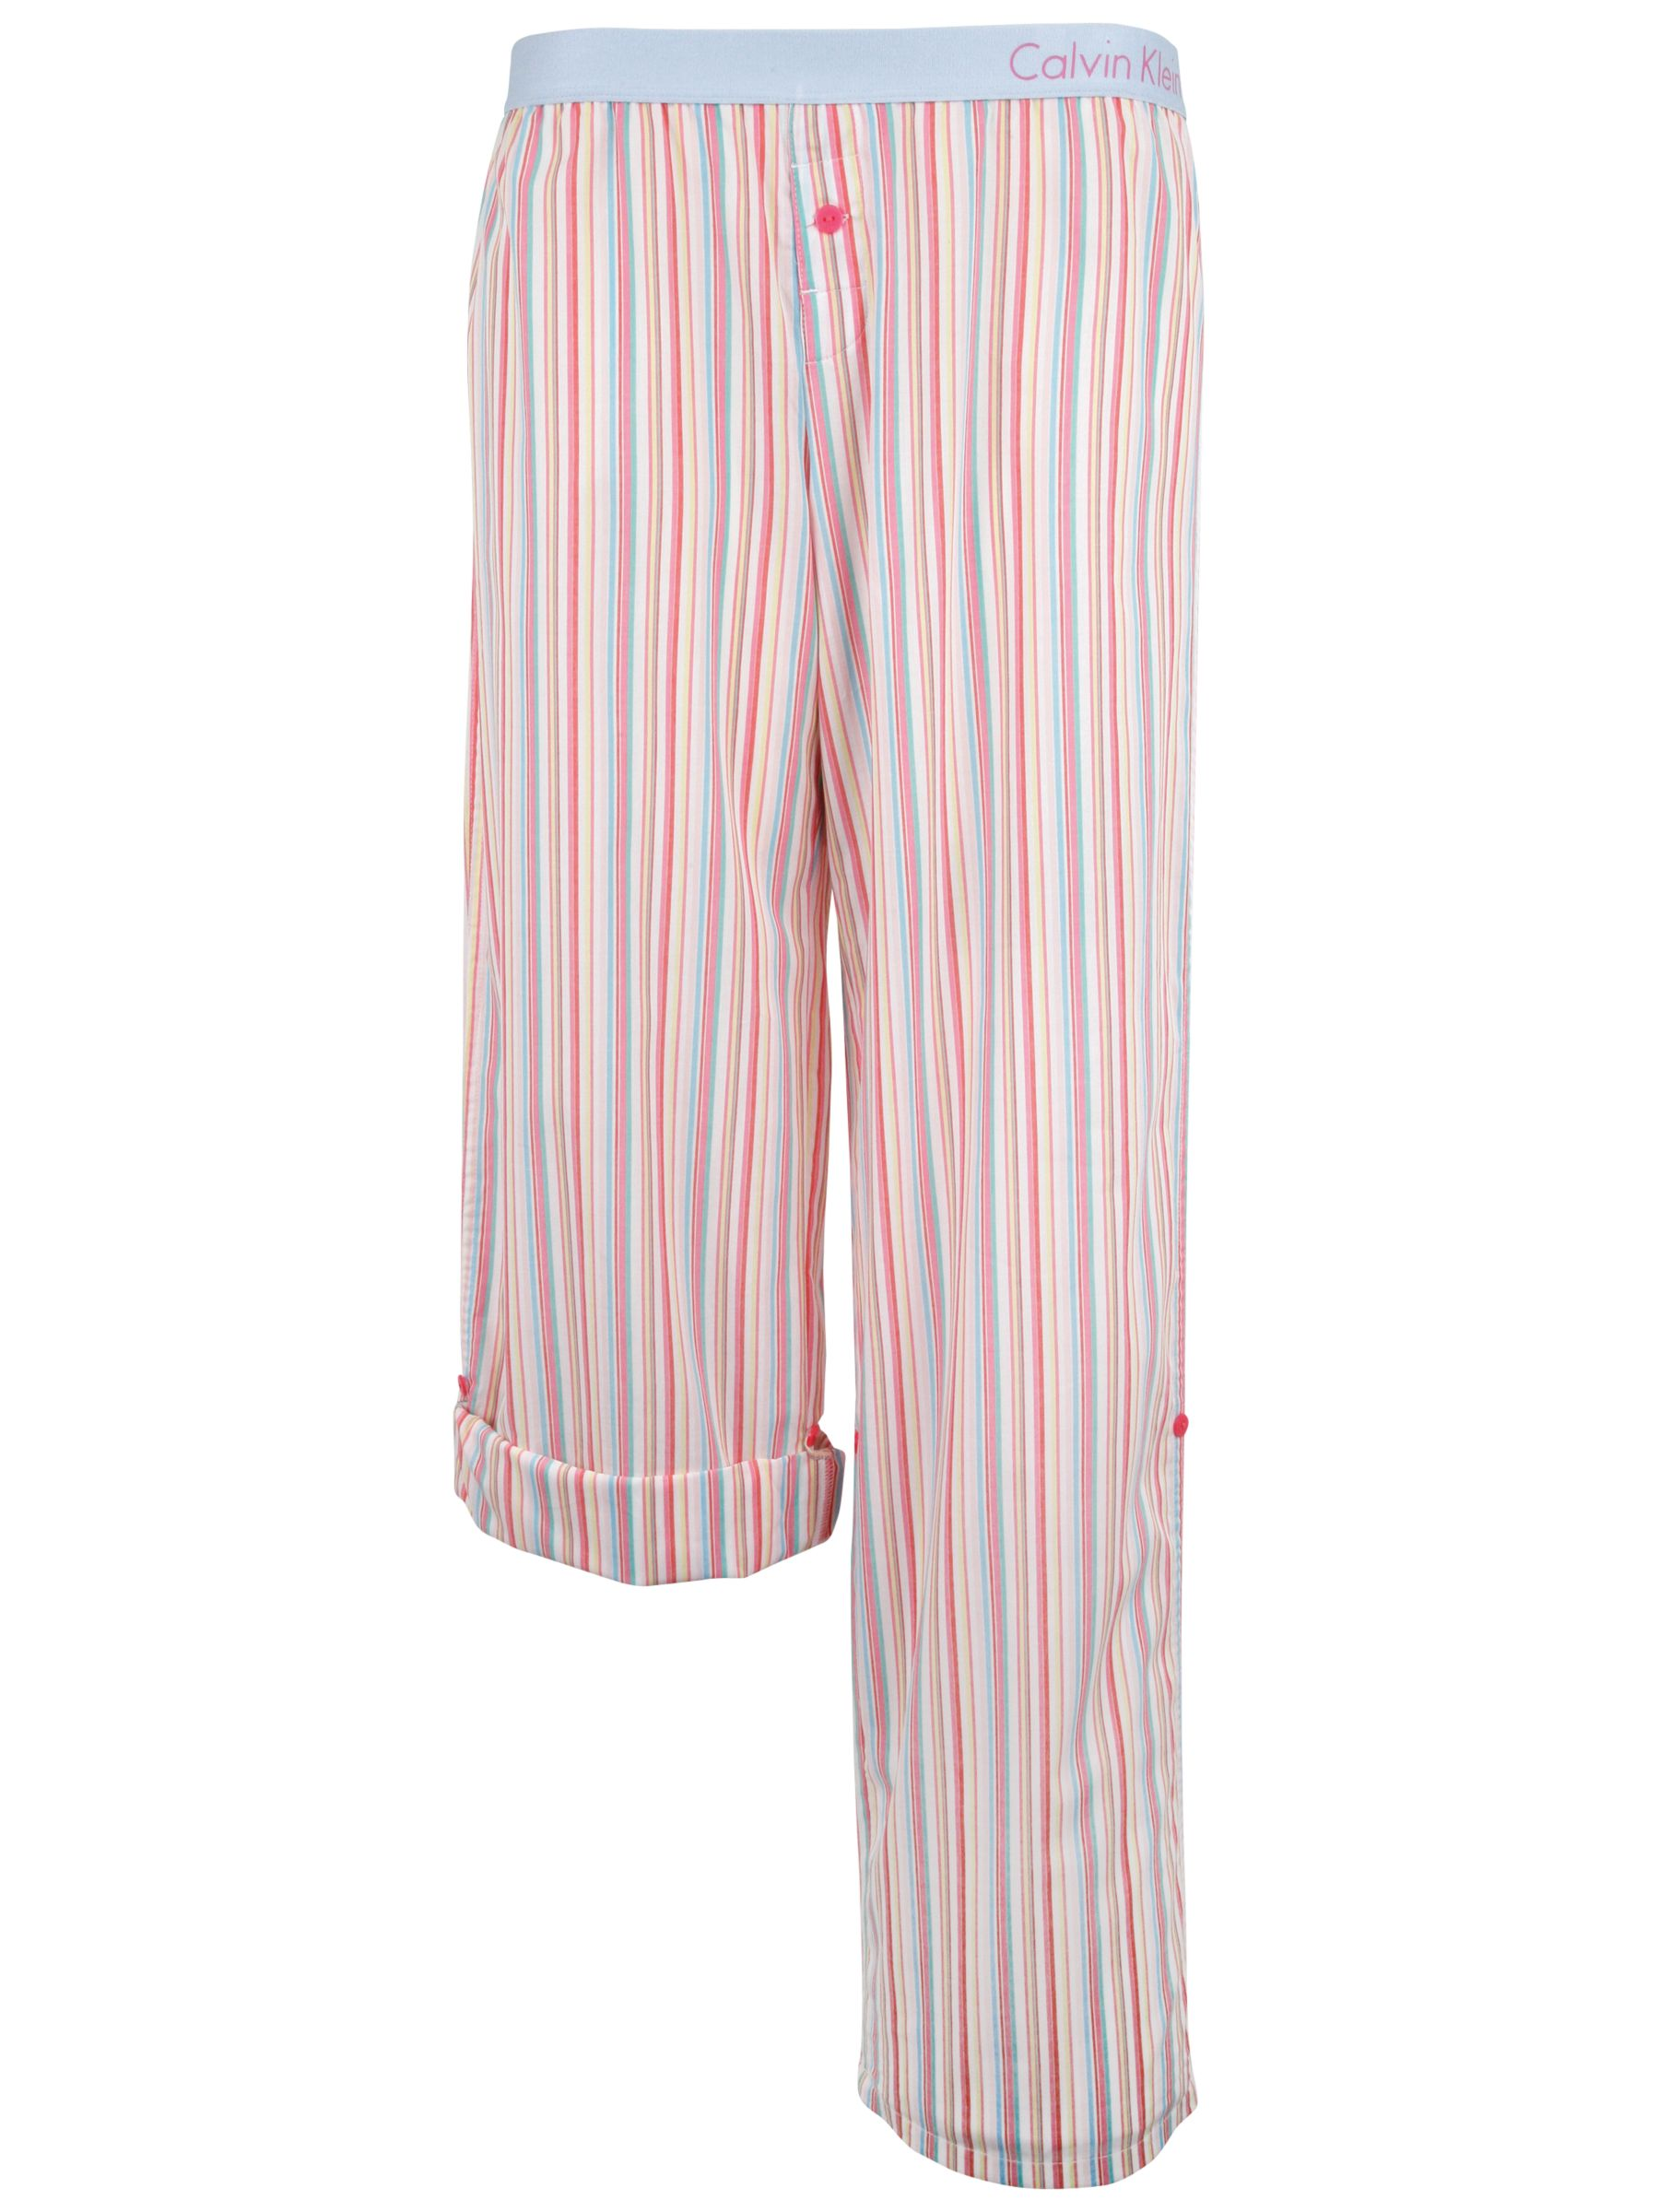 Calvin Klein Woven Roll Up Pyjama Trousers, Multi